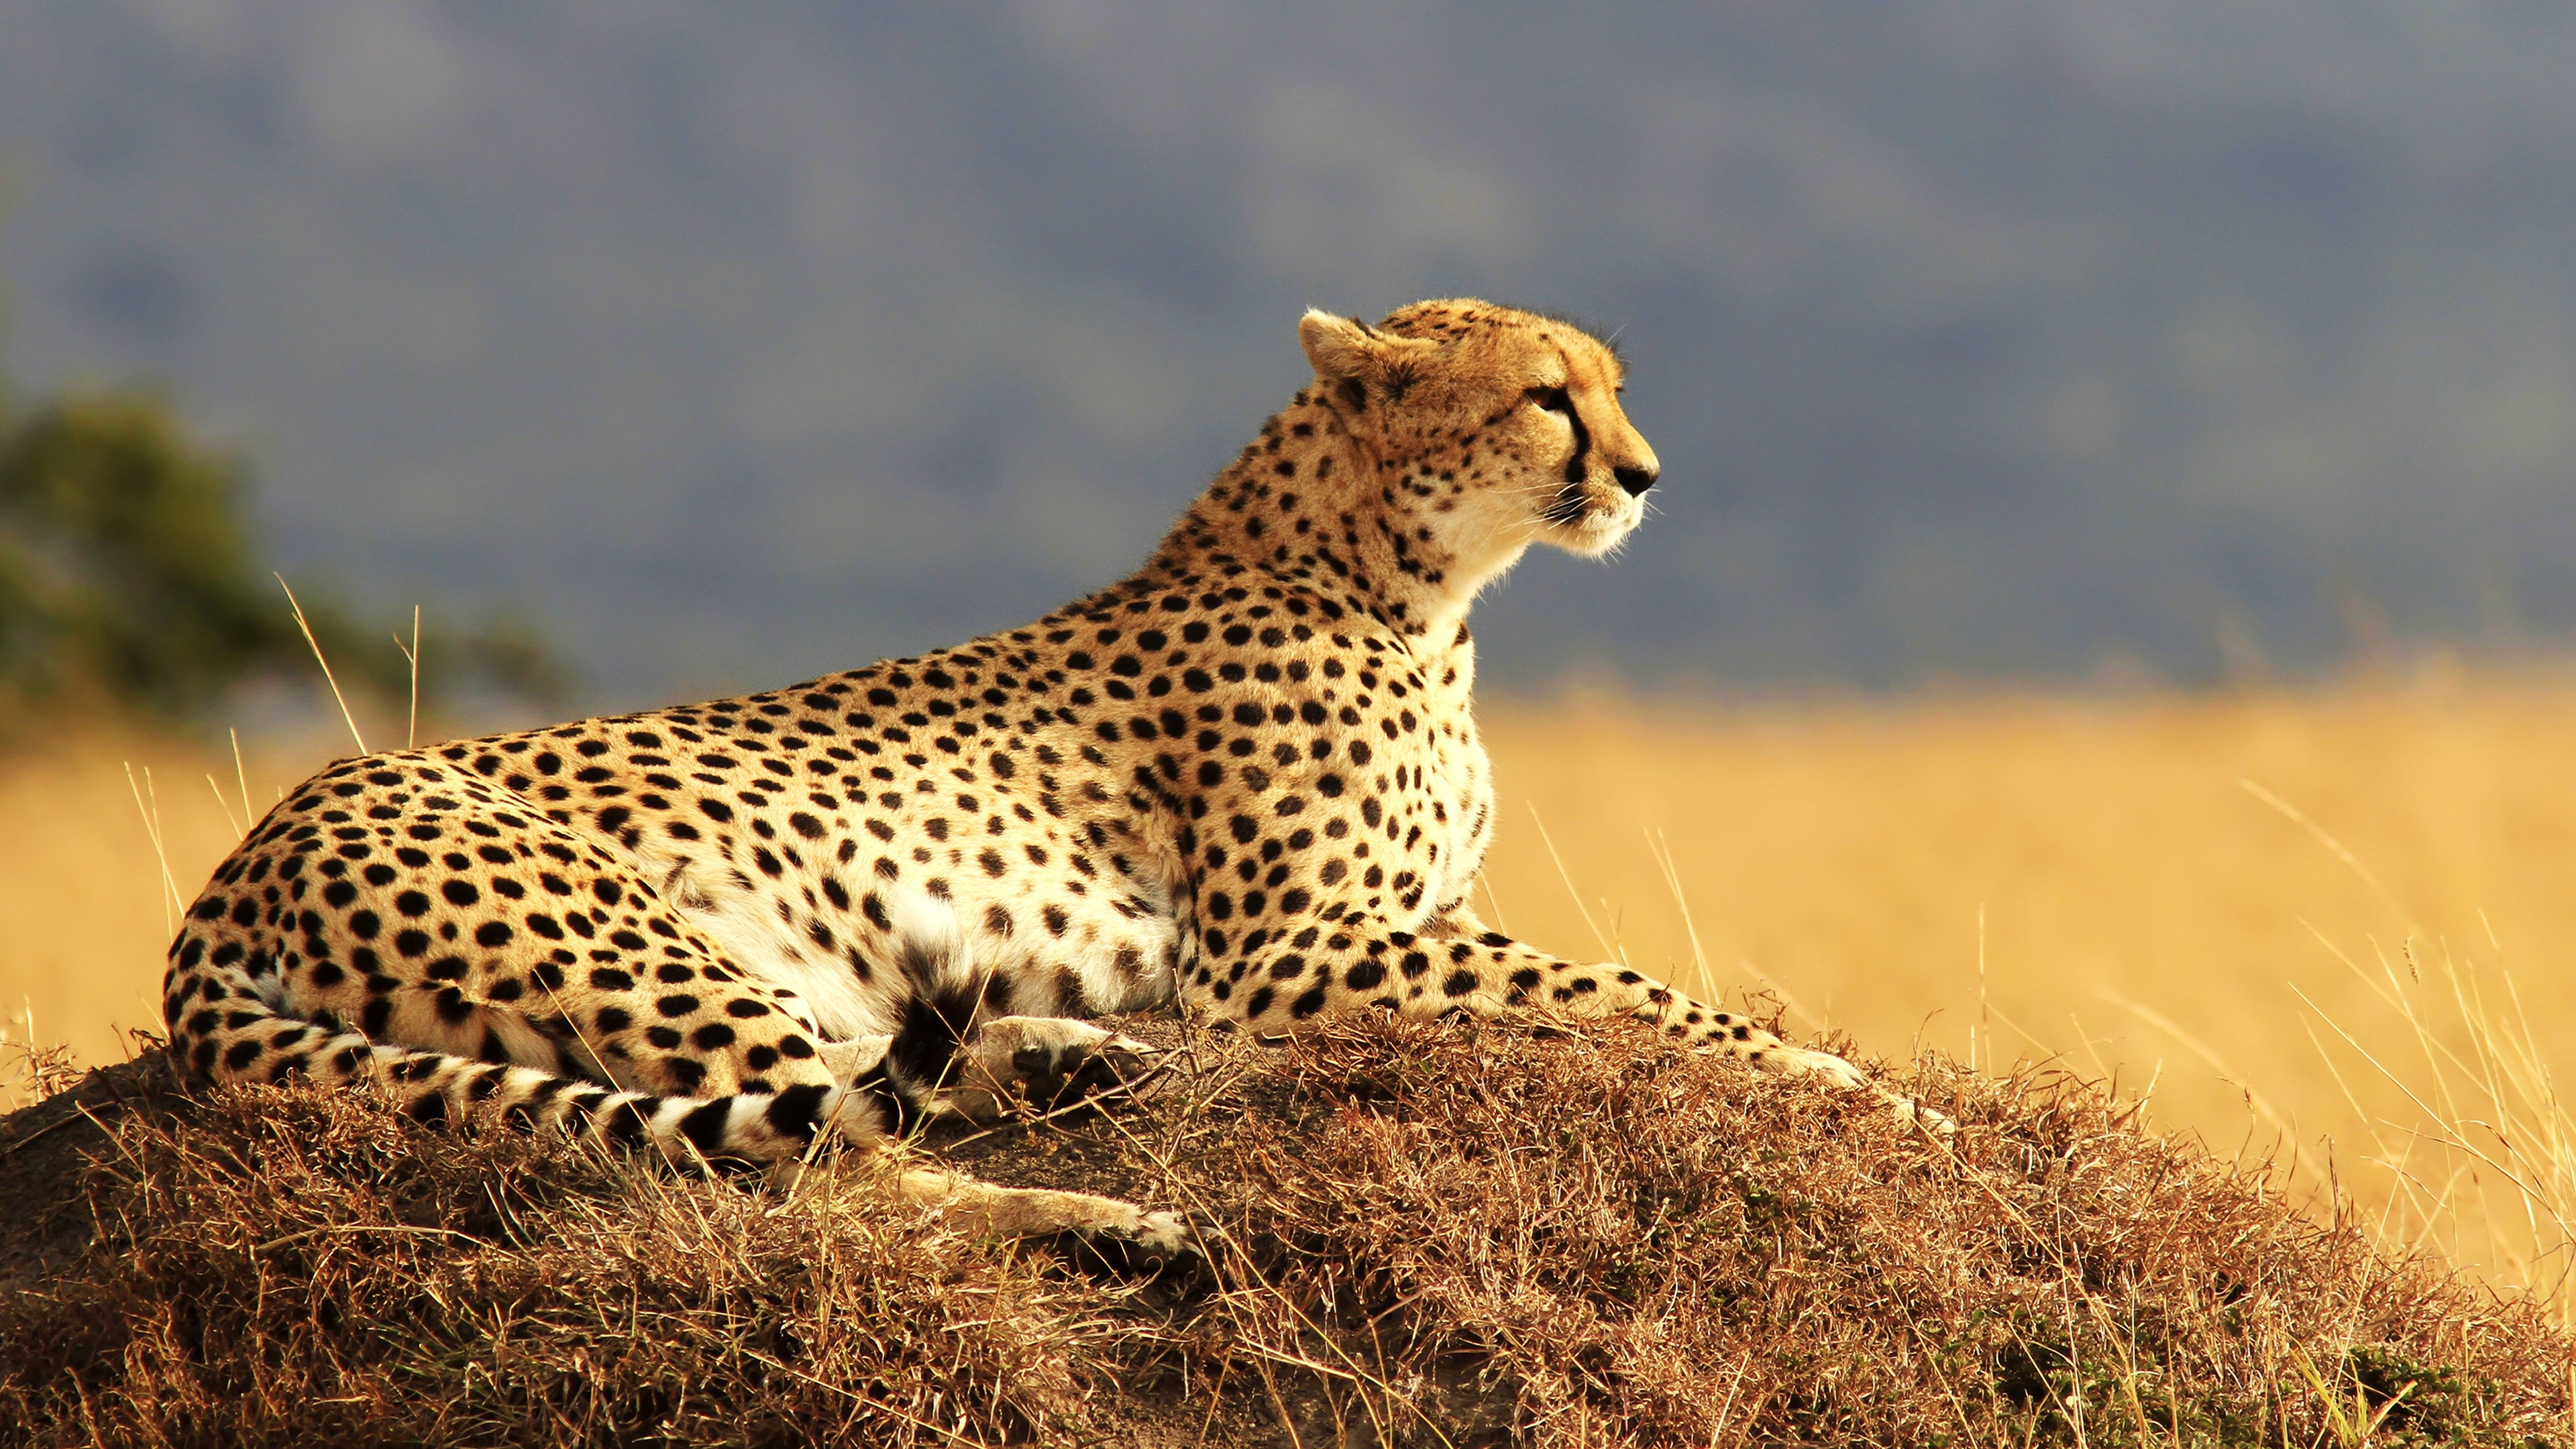 Crazy Iphone 5 Wallpapers Cheetah 4k Wallpapers Hd Wallpapers Id 18592